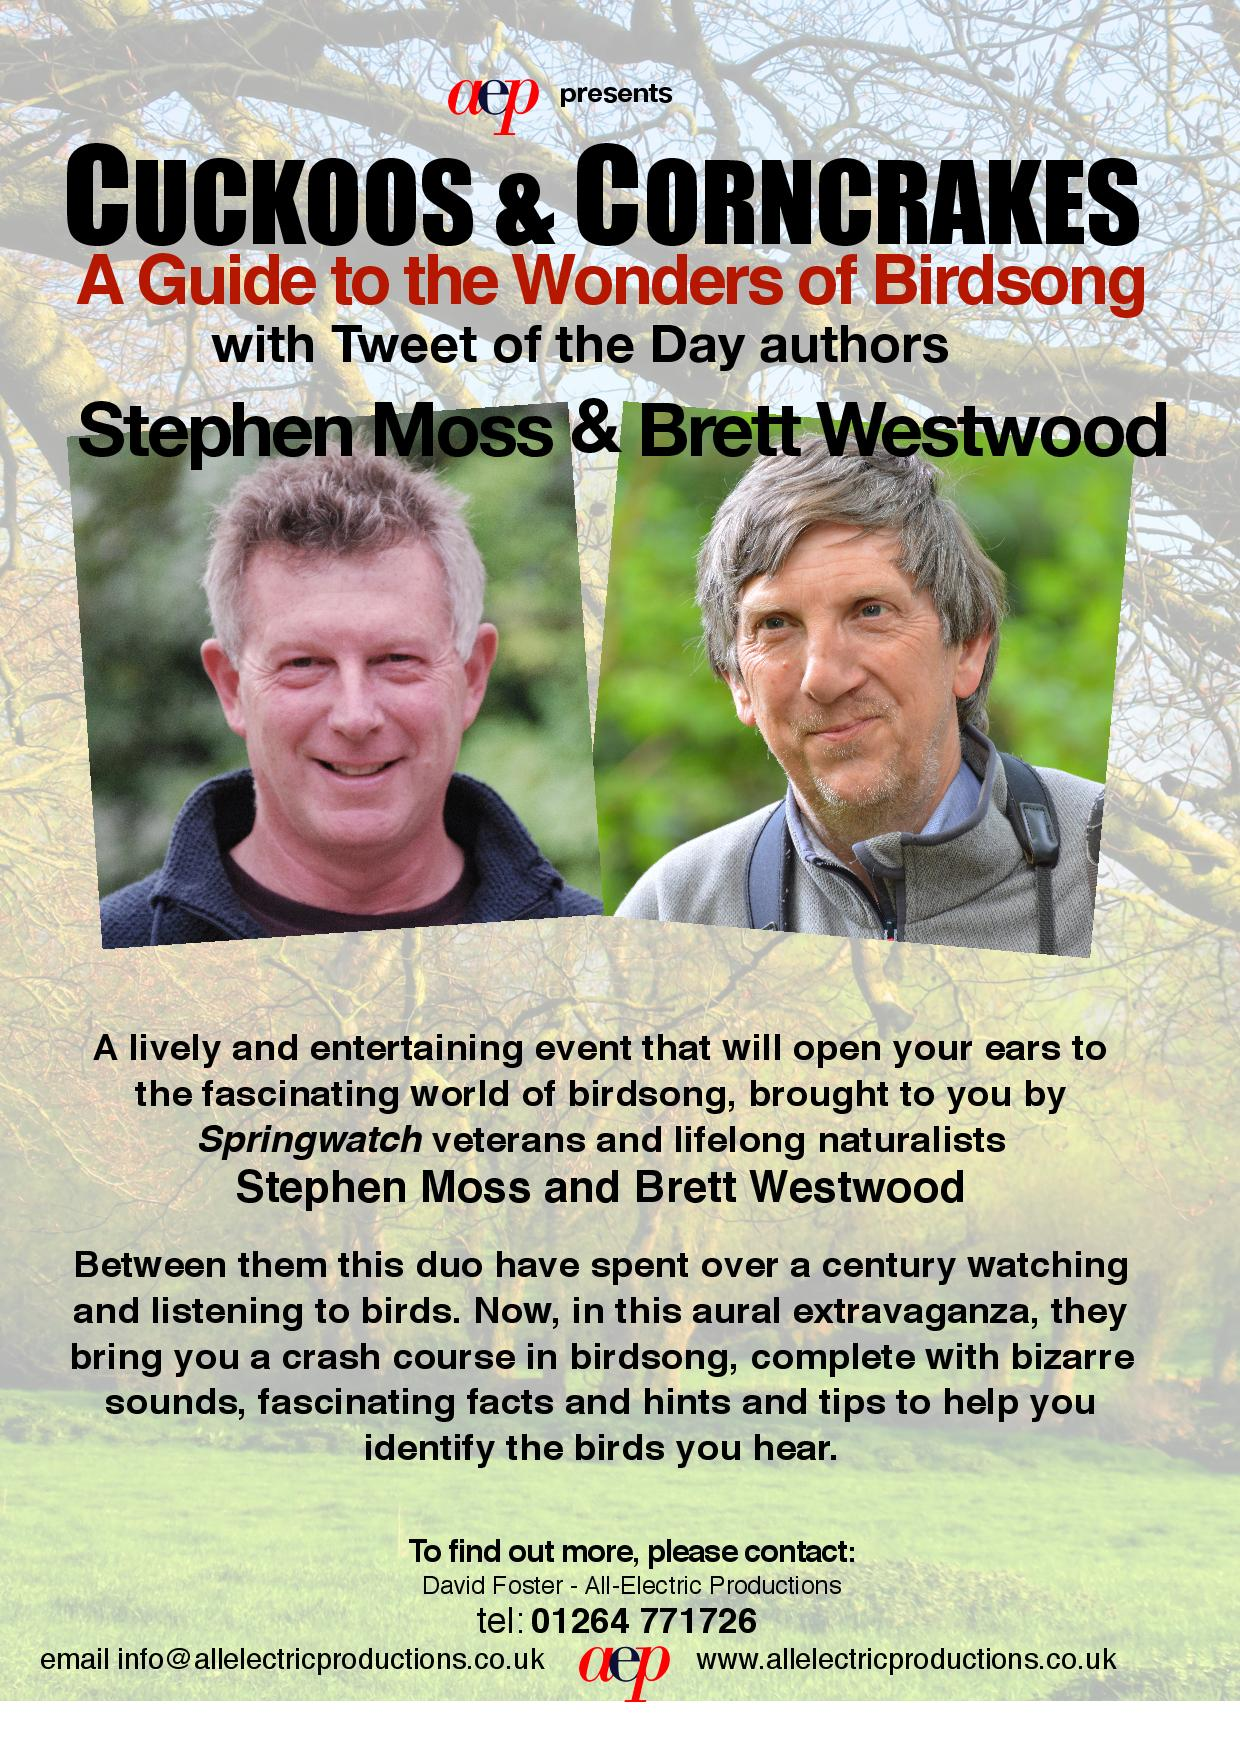 Brett Westwood and Stephen Moss